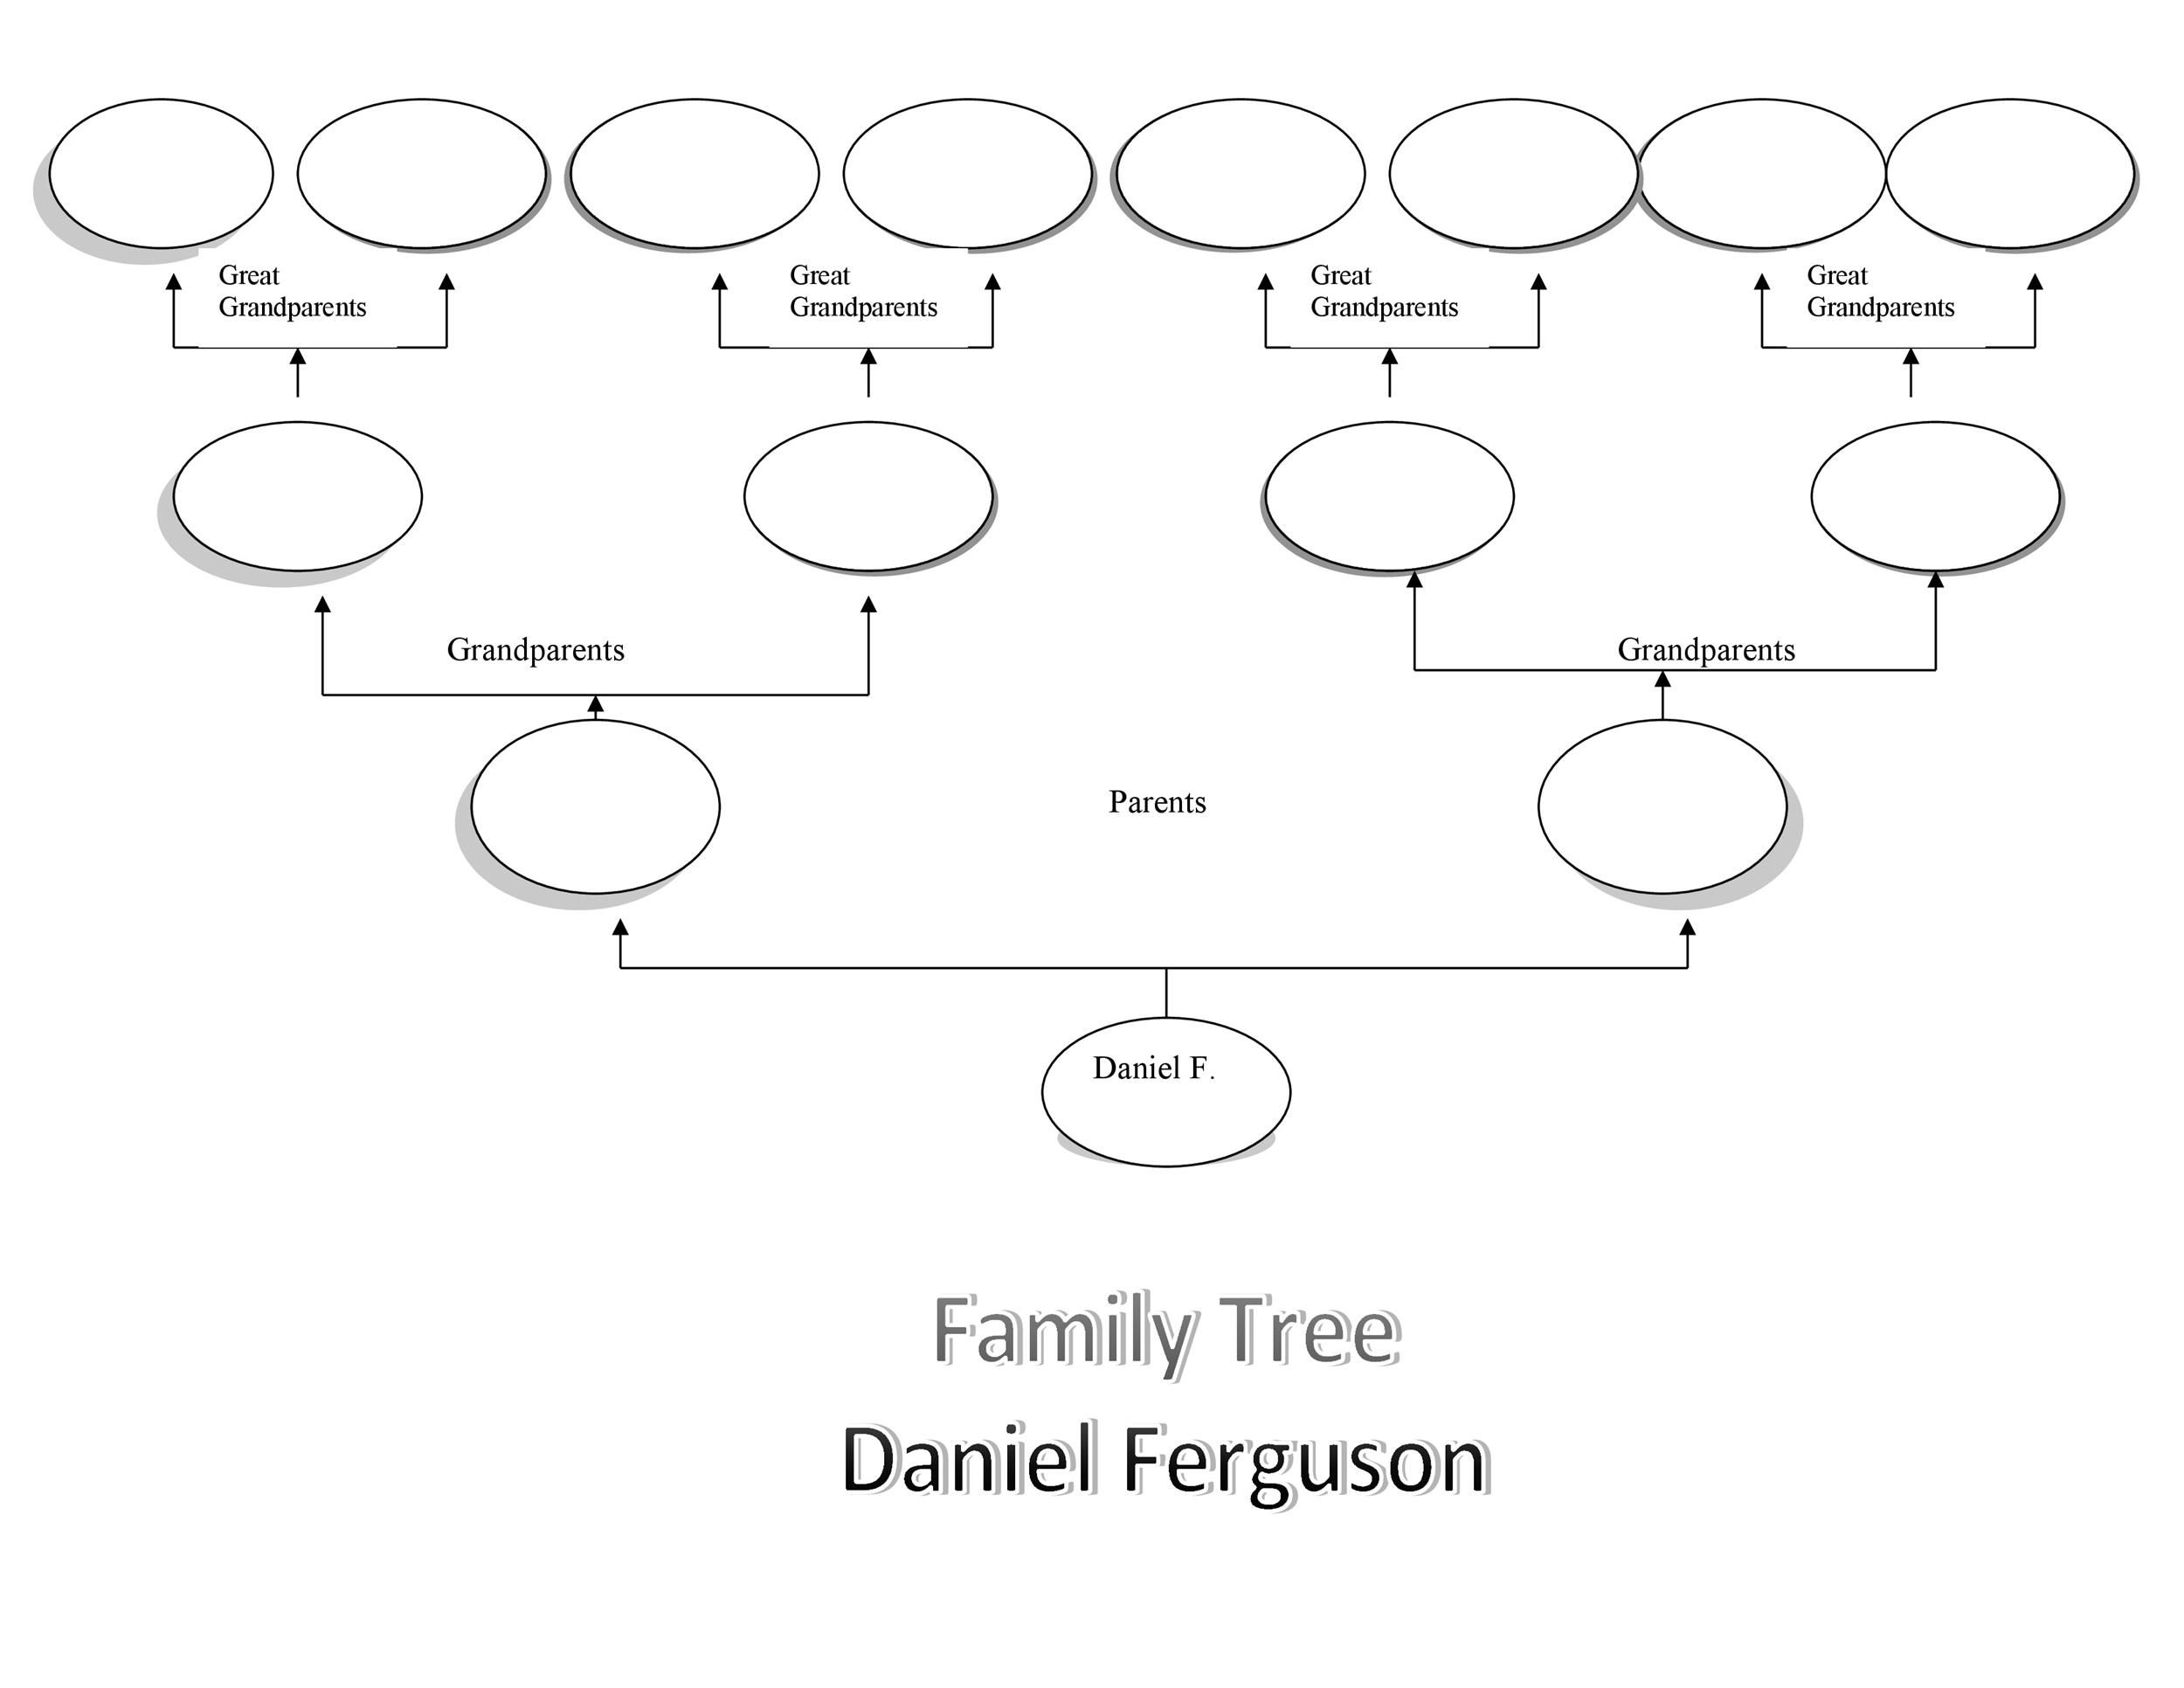 008 Incredible Family Tree Template Word Sample  Free 2010 Doc DownloadFull